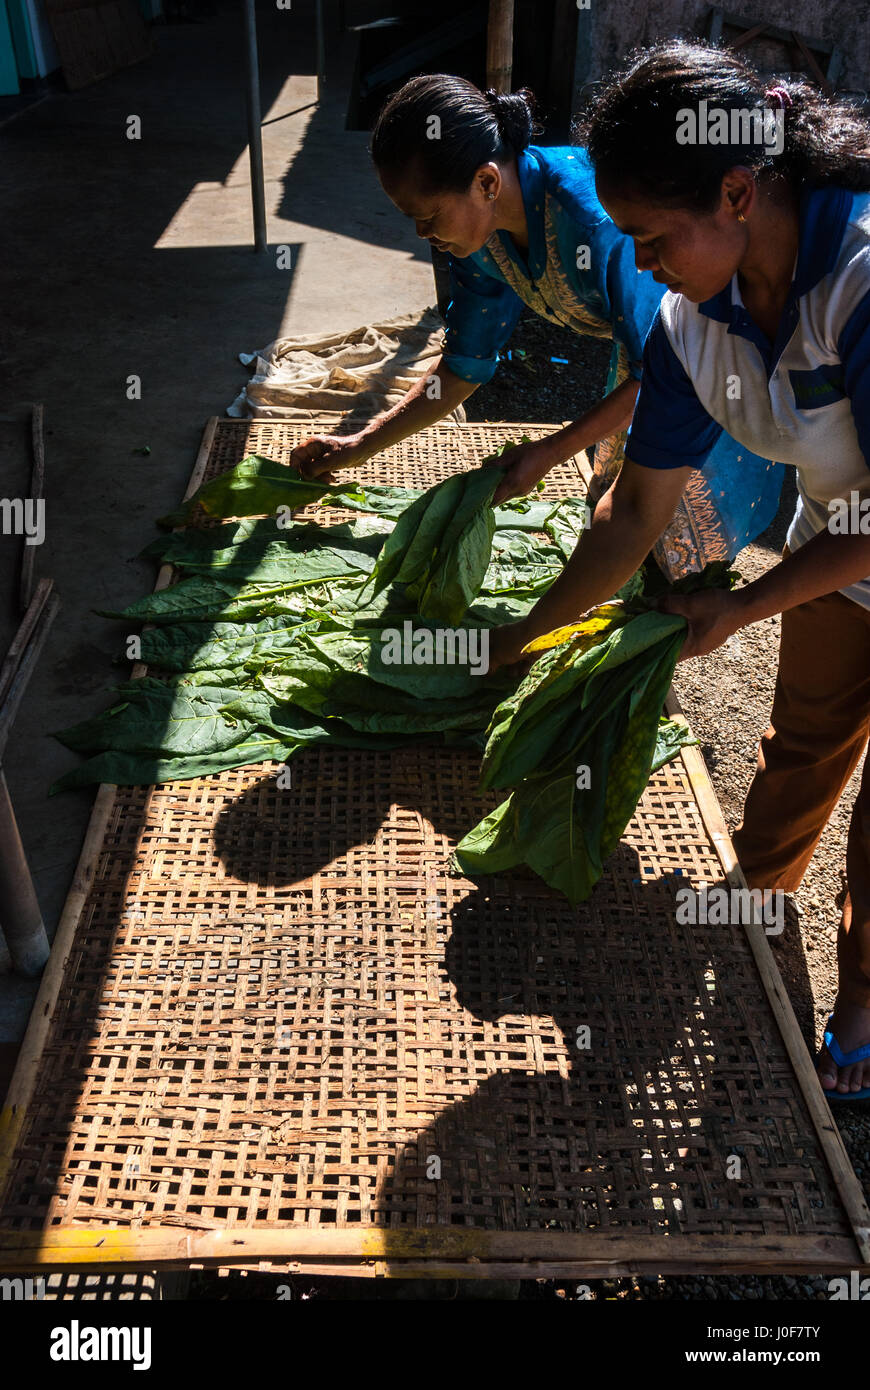 Women drying tobacco leaves in Temanggung, Central Java, Indonesia. - Stock Image